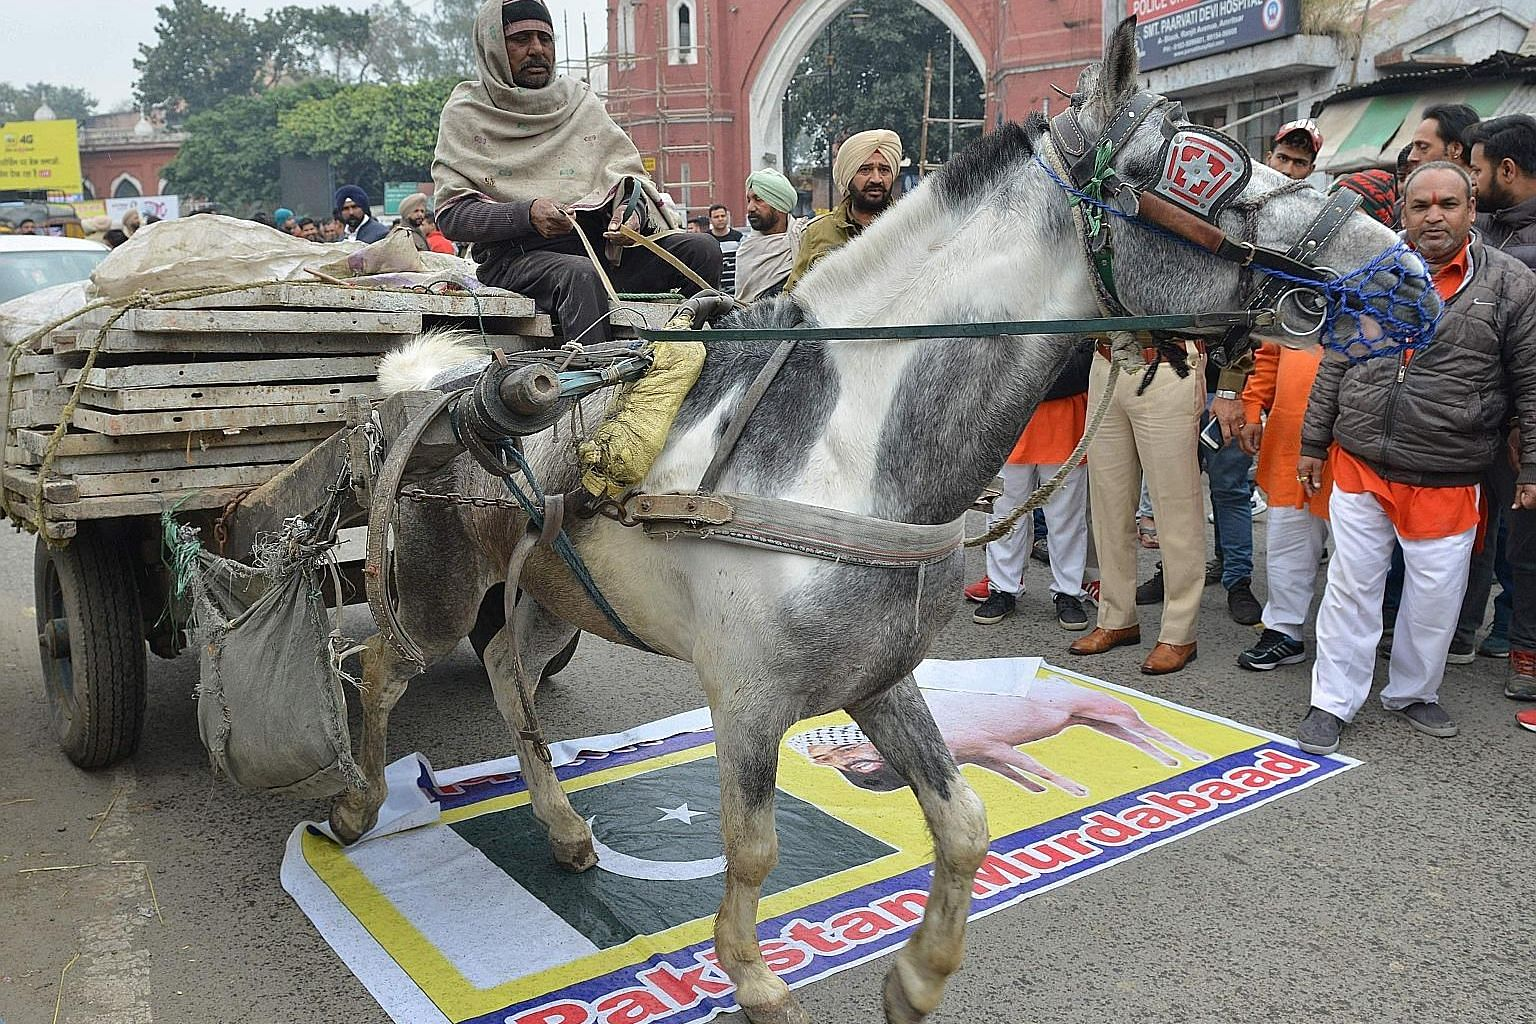 Far left: An Indian man in Amritsar, India, riding his cart over a banner depicting the Pakistani flag and an image of the leader of Pakistan-based Islamist militant group Jaish-e-Mohammad, which claimed responsibility for the car bomb attack last Th